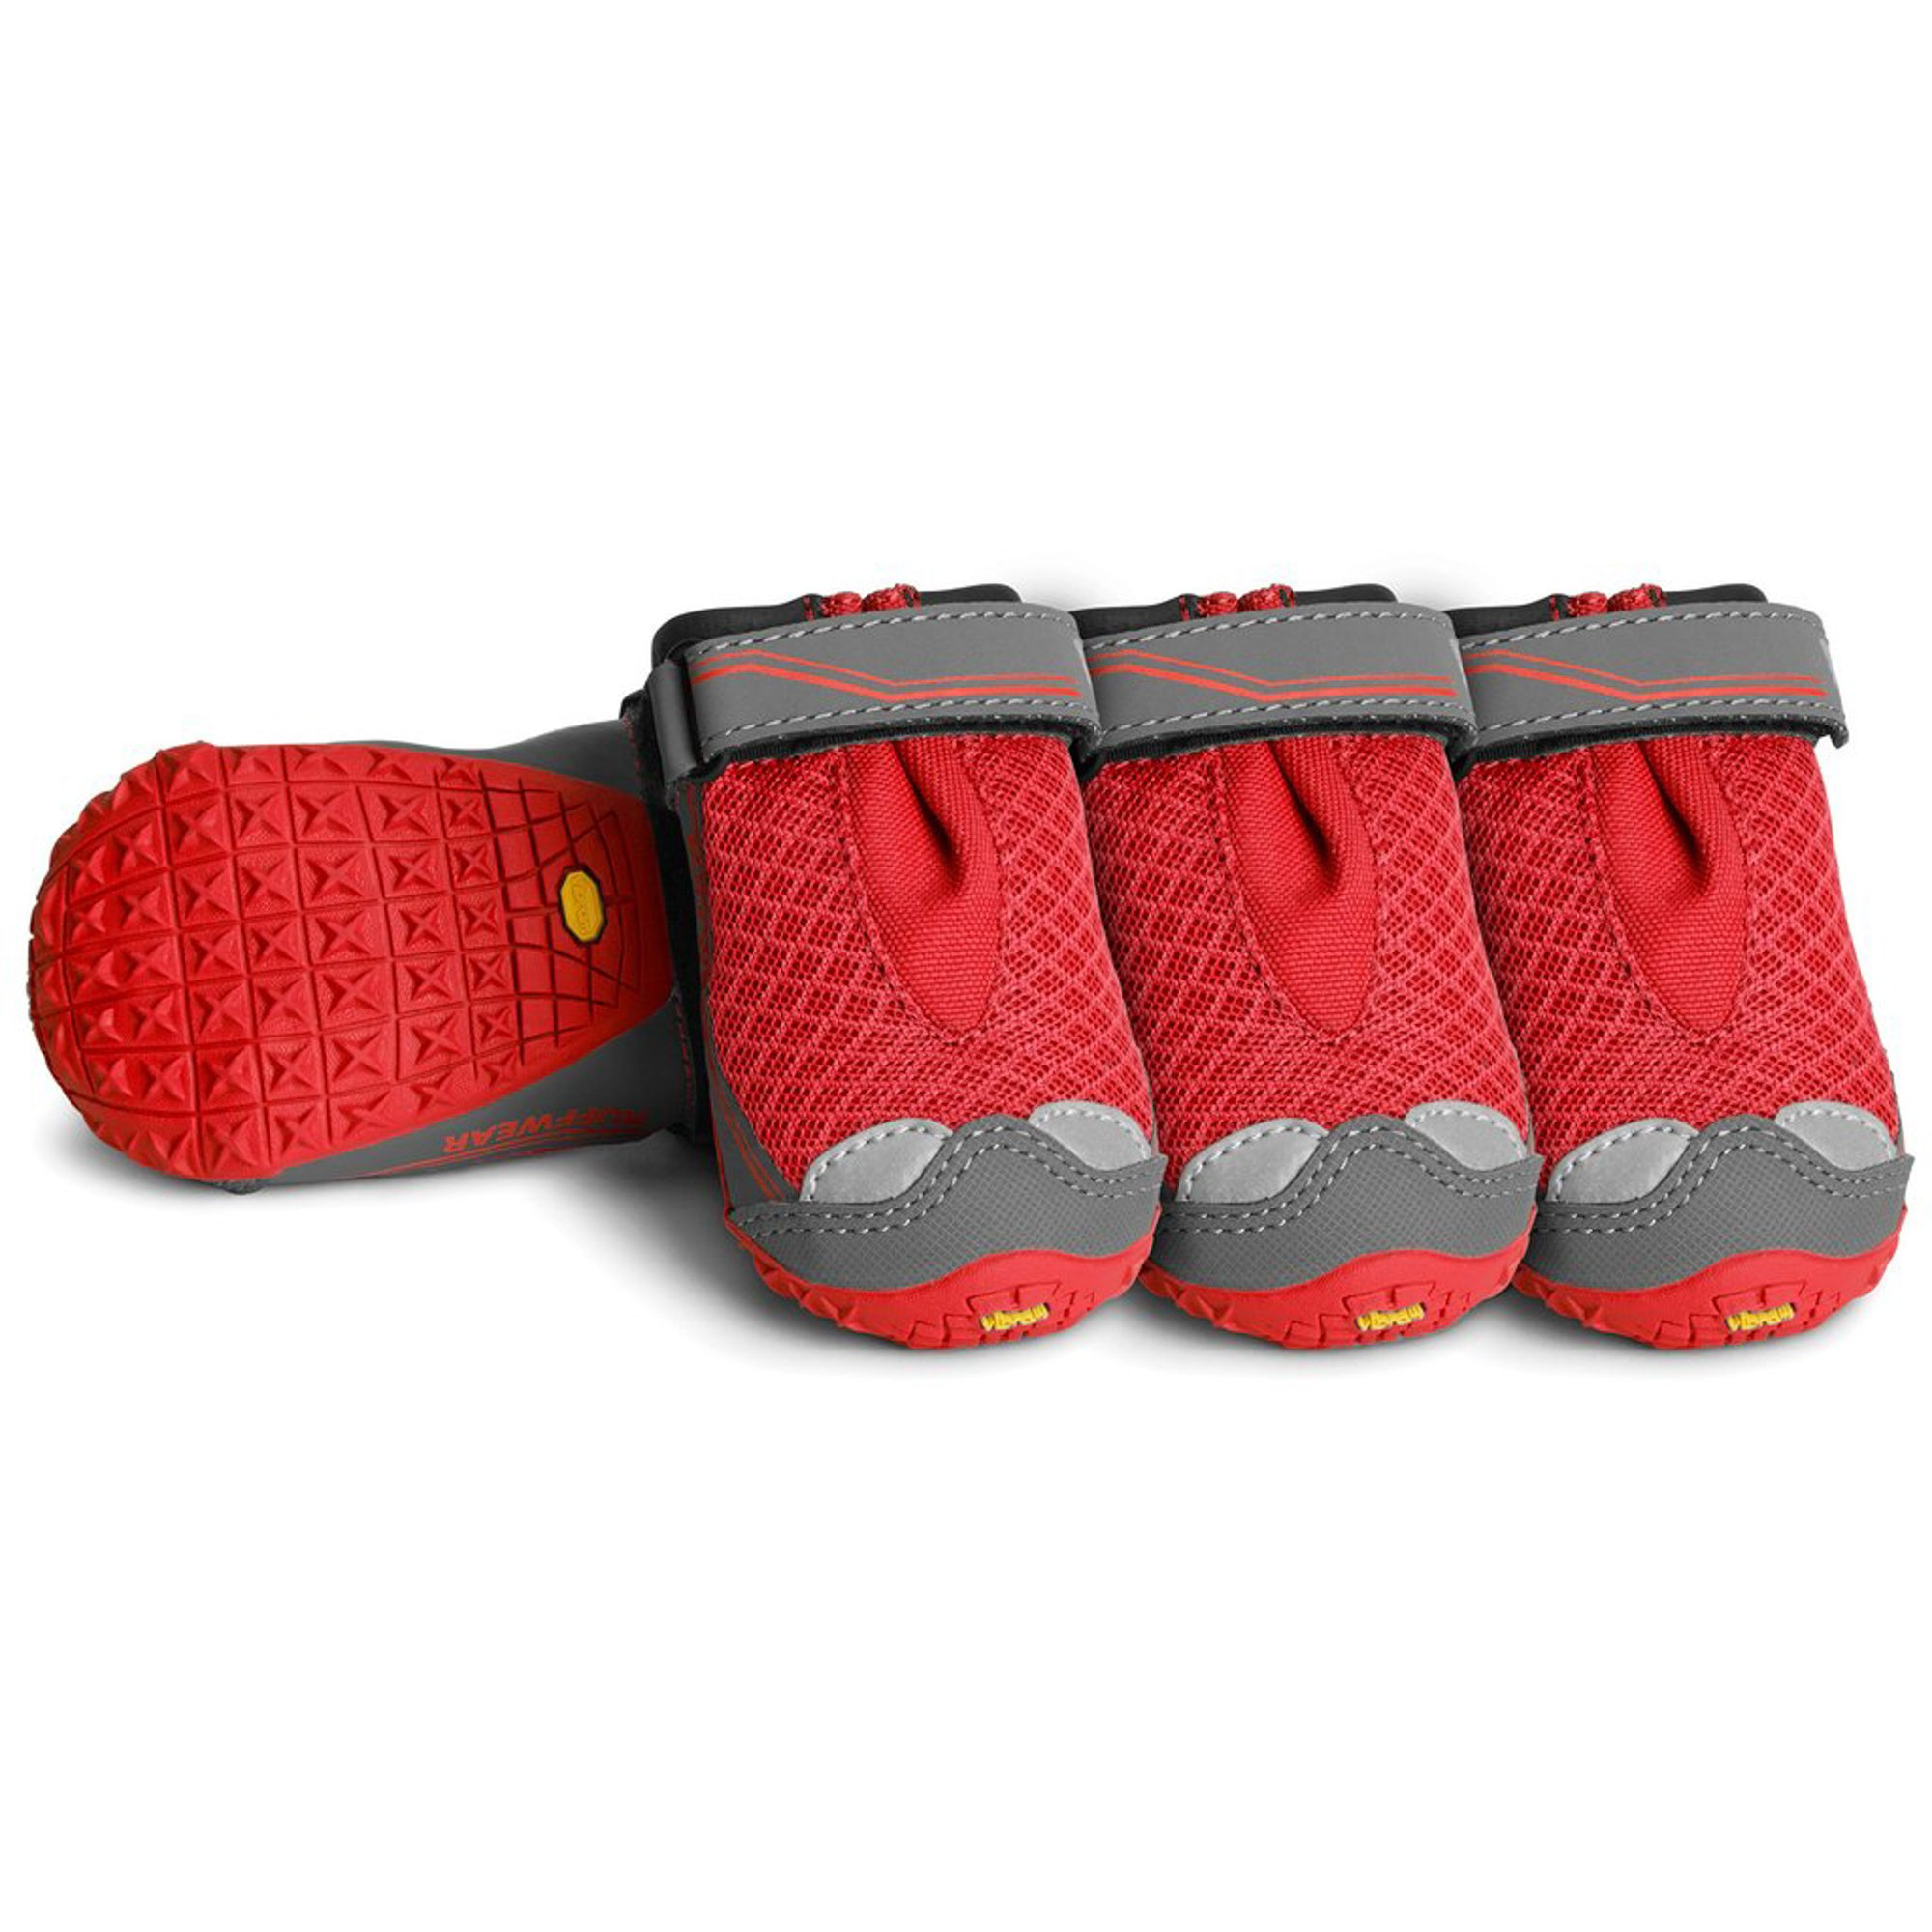 RUFFWEAR - Grip Trex, All-Terrain Paw Wear for Dogs, Red Currant, 1.75 in (Set of 4)